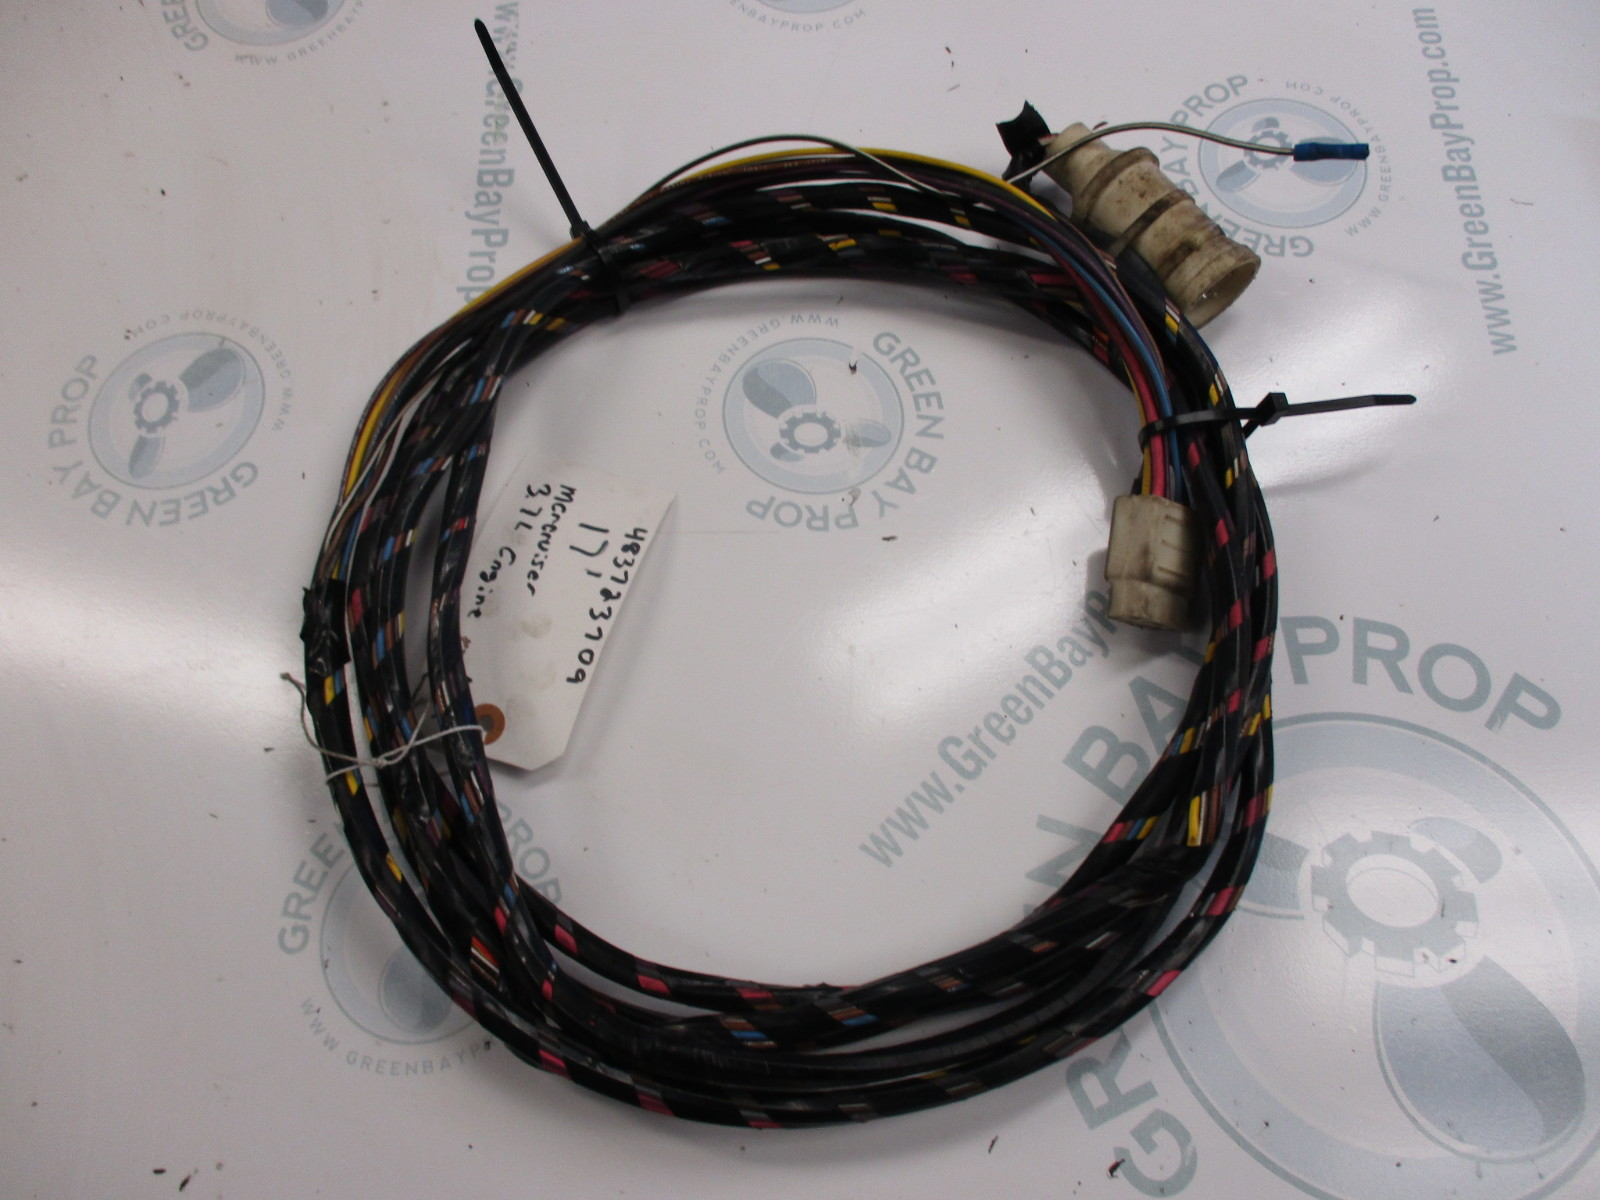 Mercruiser Wiring Harness Instrument Panel Diagram For Free 392092d1248691578 Need Dash Also Besides S L300 Moreover Furthermore 26245 Ctc Mercury